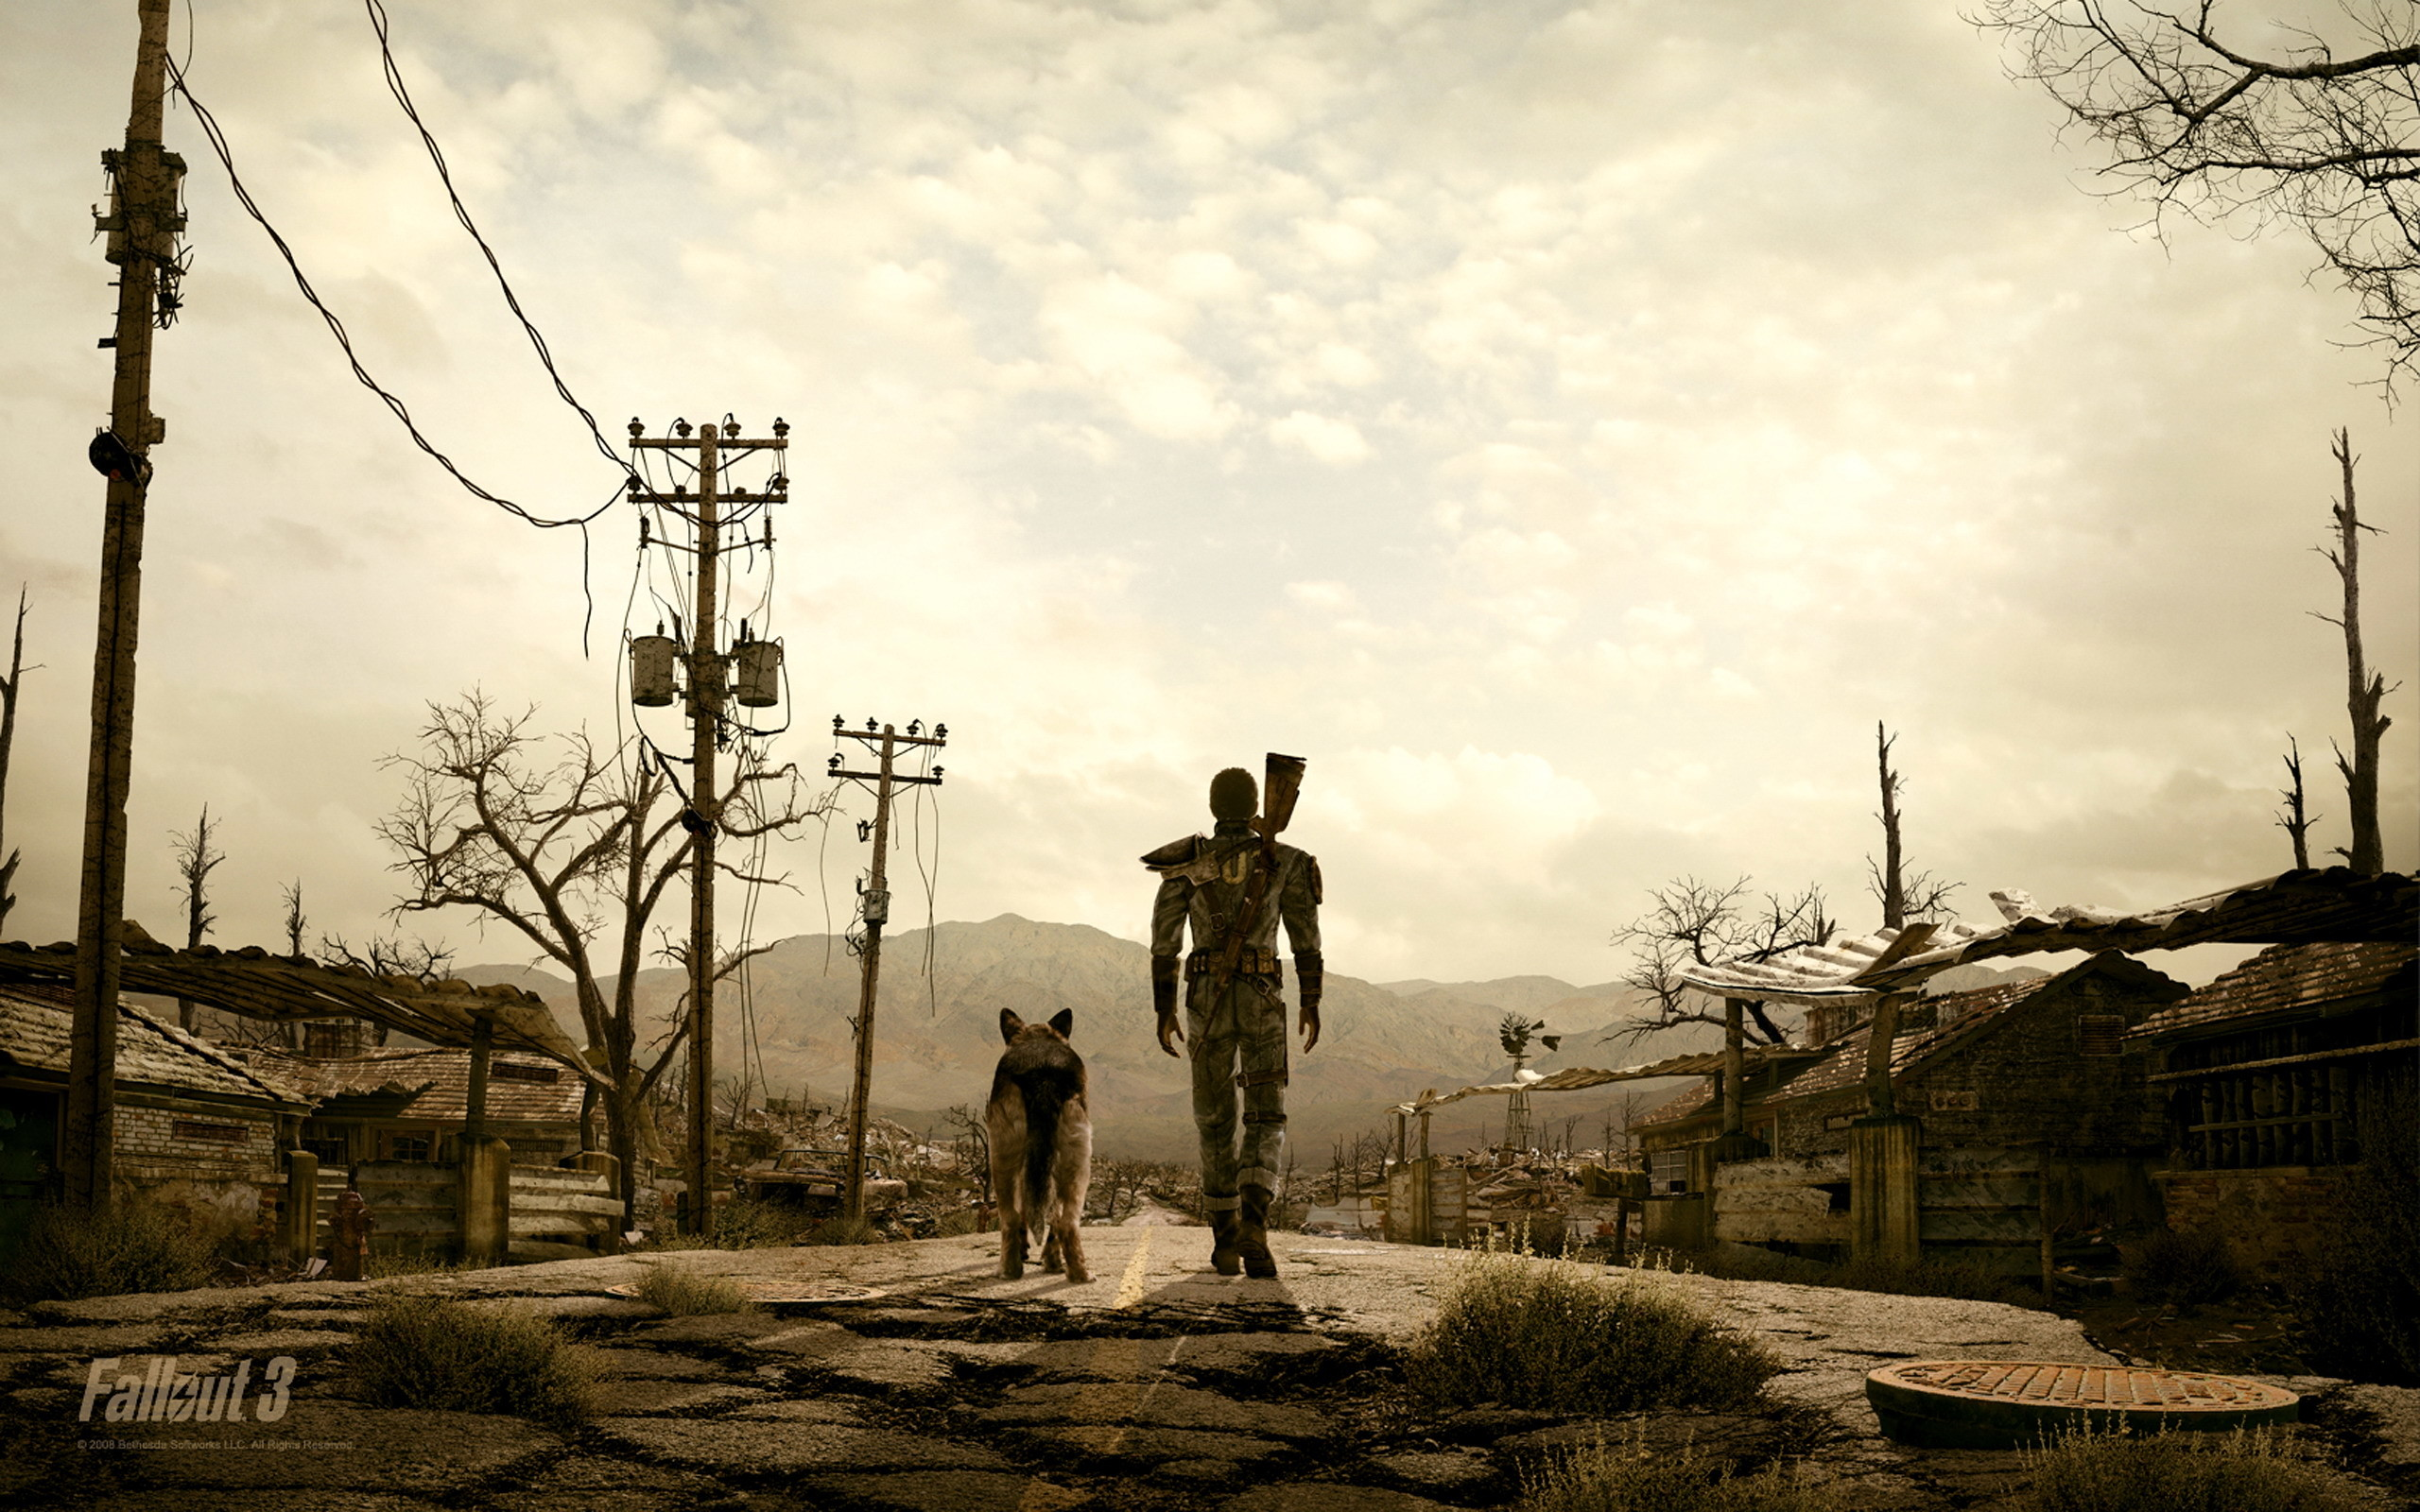 Fallout 3 Wallpaper Hd 81 Images